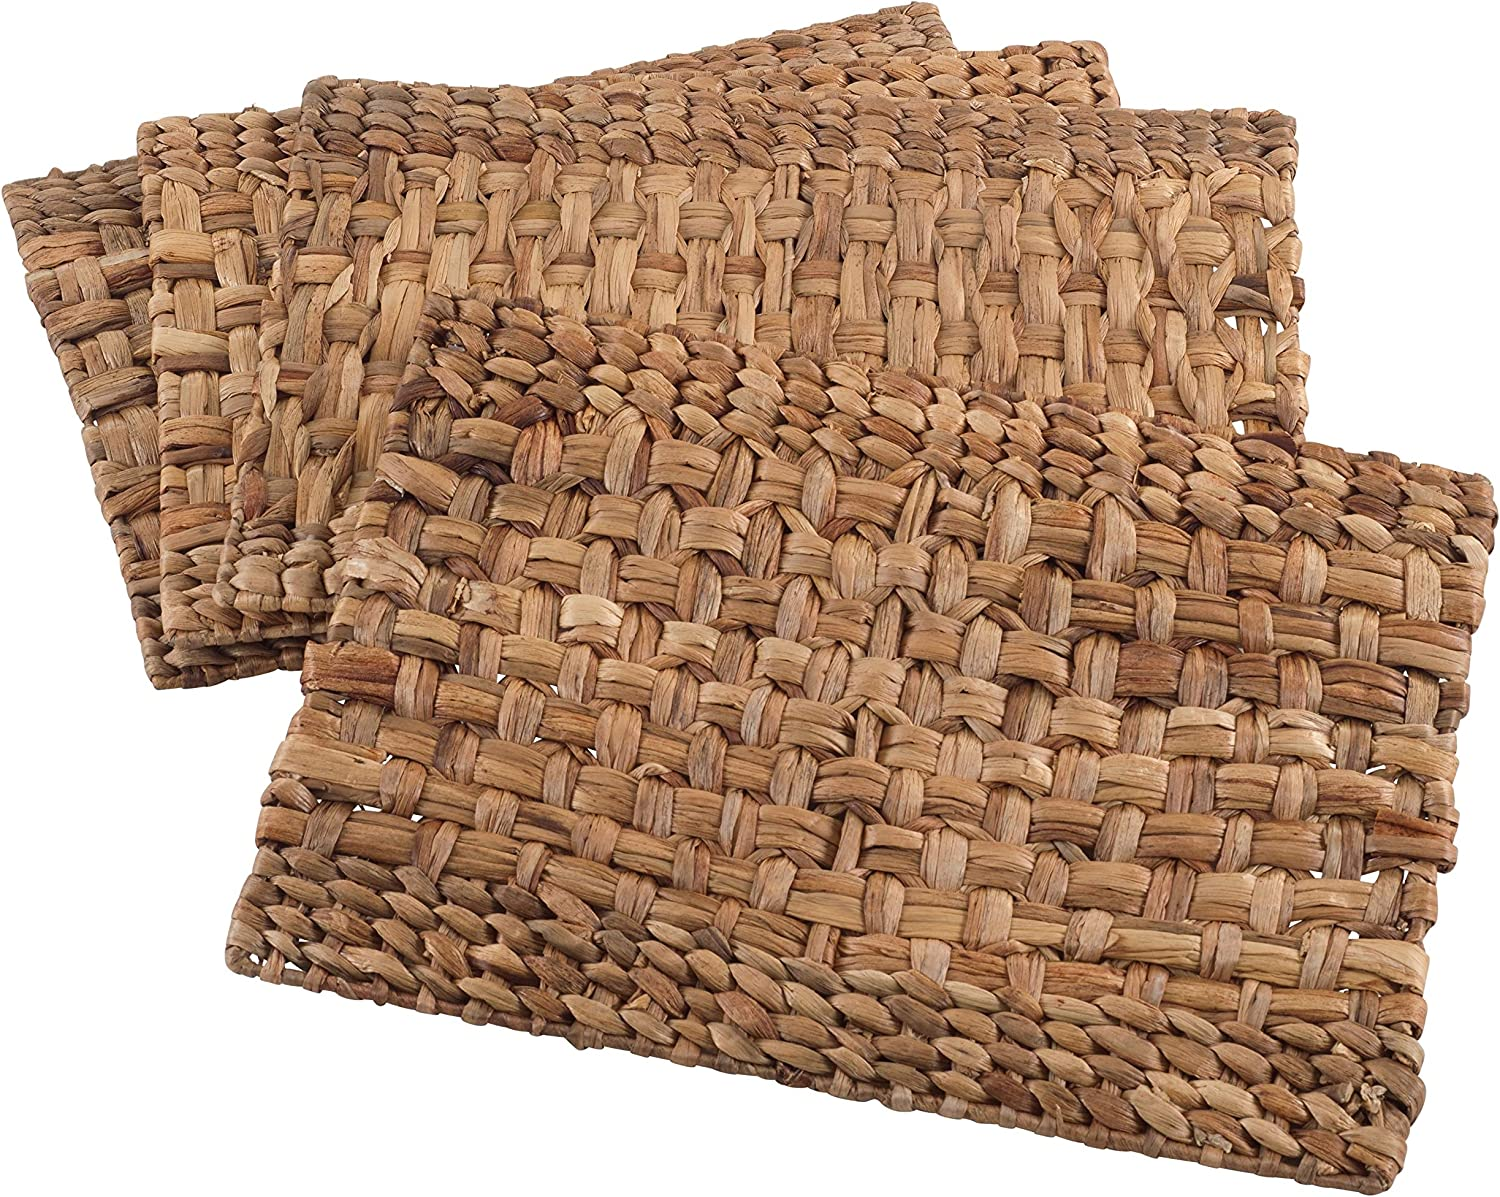 MISC 4 Piece Set Brown Woven Rattan Placemats Wooden Hardboard Texture Placemat Settings